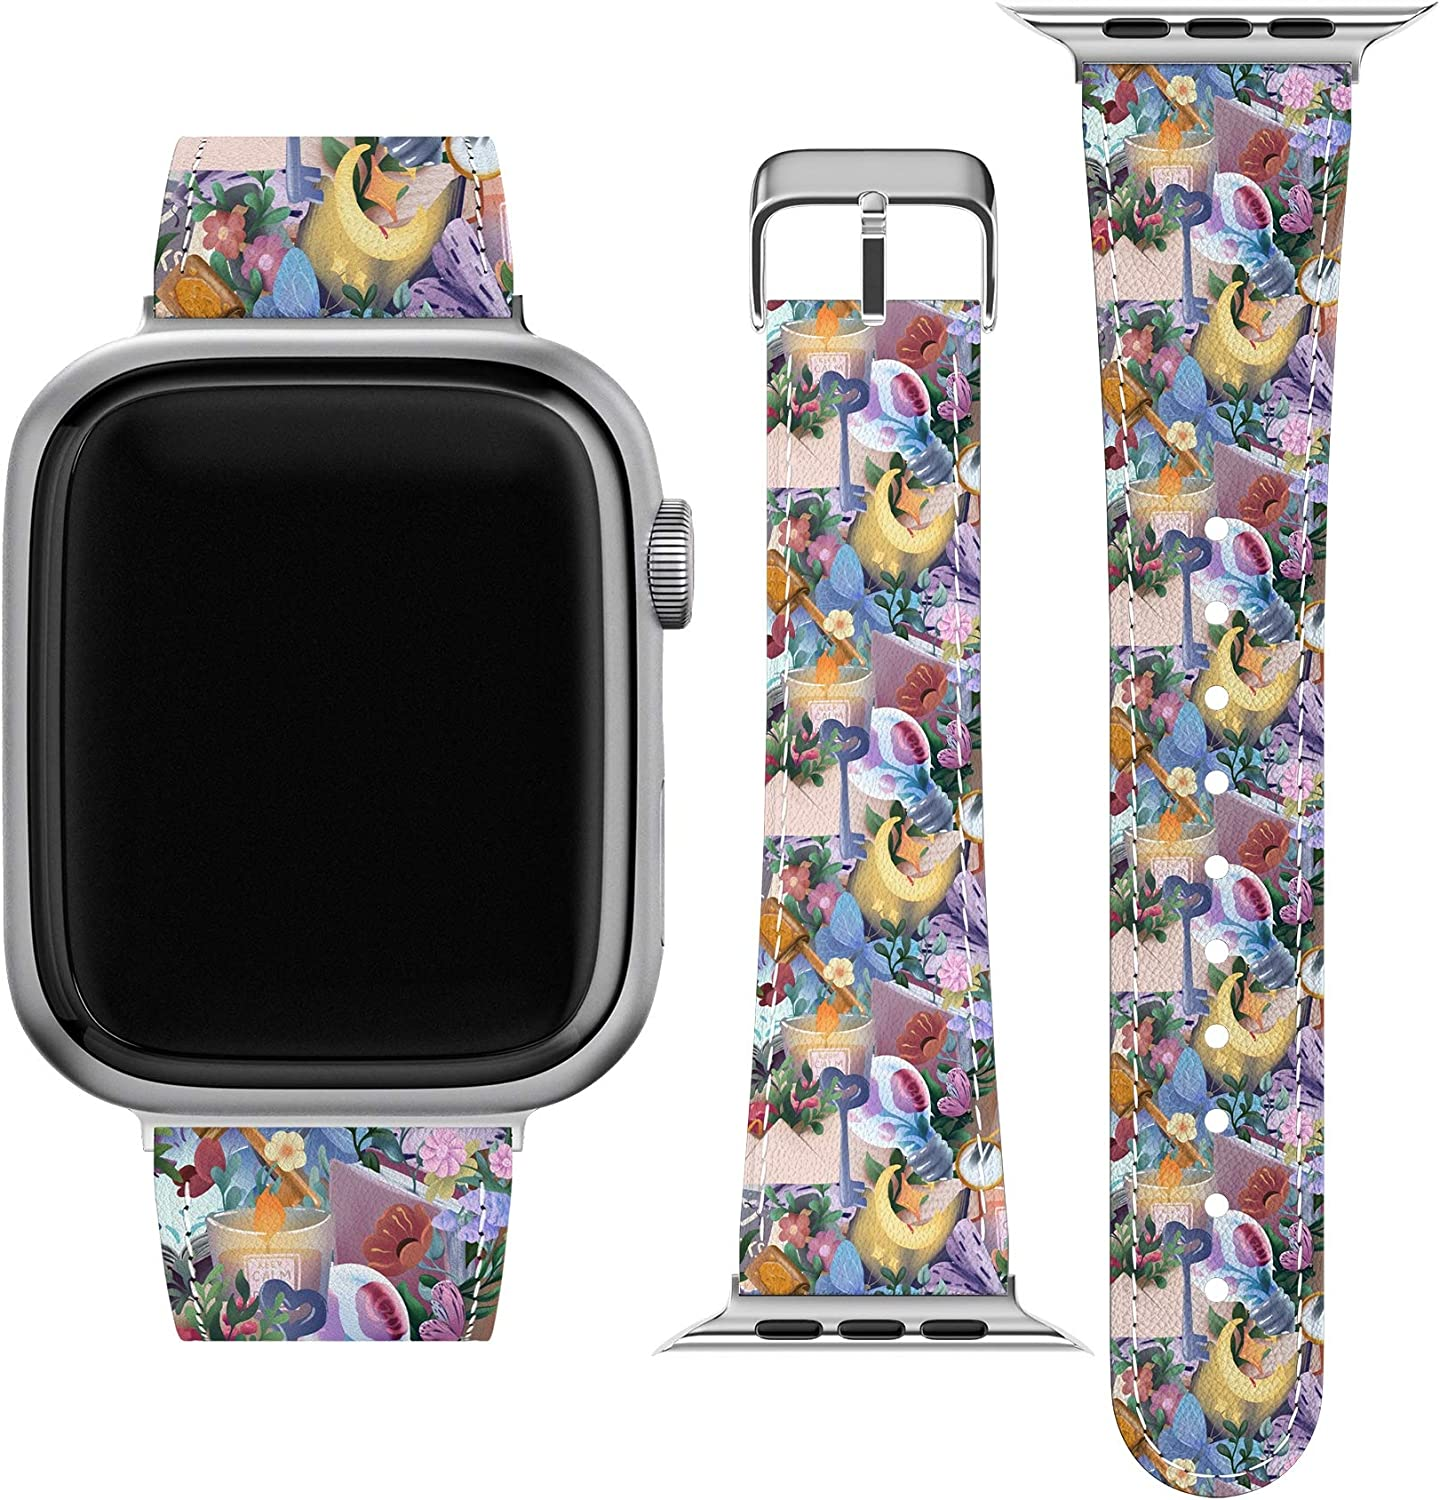 Lex Altern Band Compatible with Apple Watch Series 6 SE 5 4 3 2 1 38mm 40mm 42mm 44mm Flowers Cute Replacement Strap for iWatch Thin Stylish Vegan Leather Reading Bookworm Books Nerd Print Slim wh116